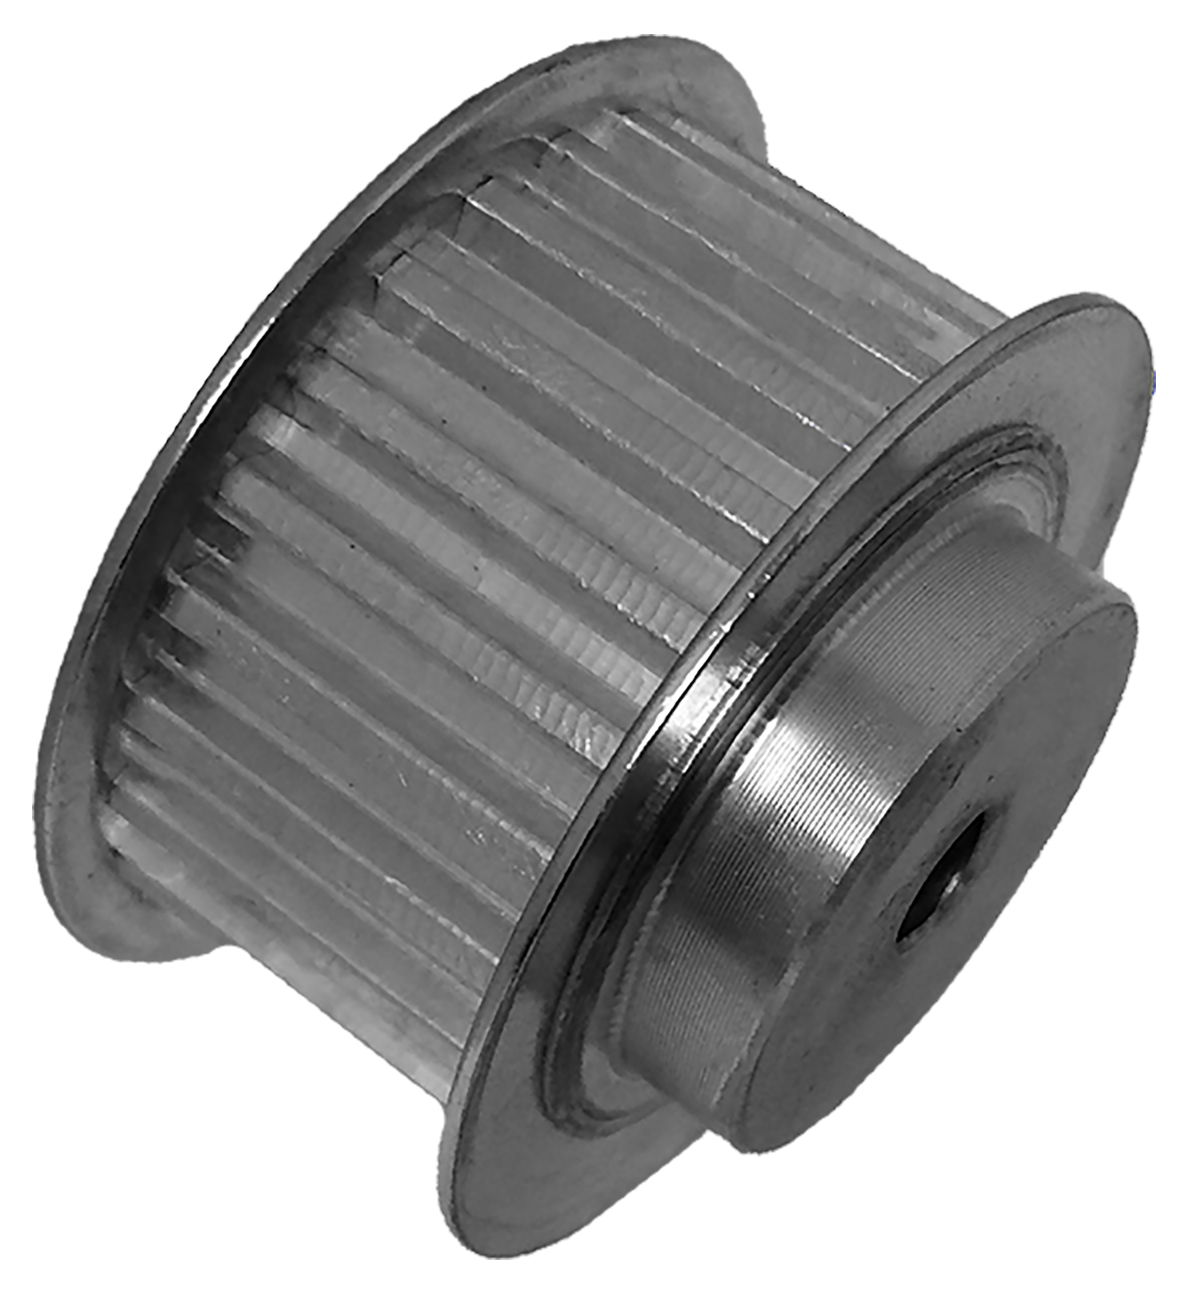 27T5/25-2 - Aluminum Metric Pulleys